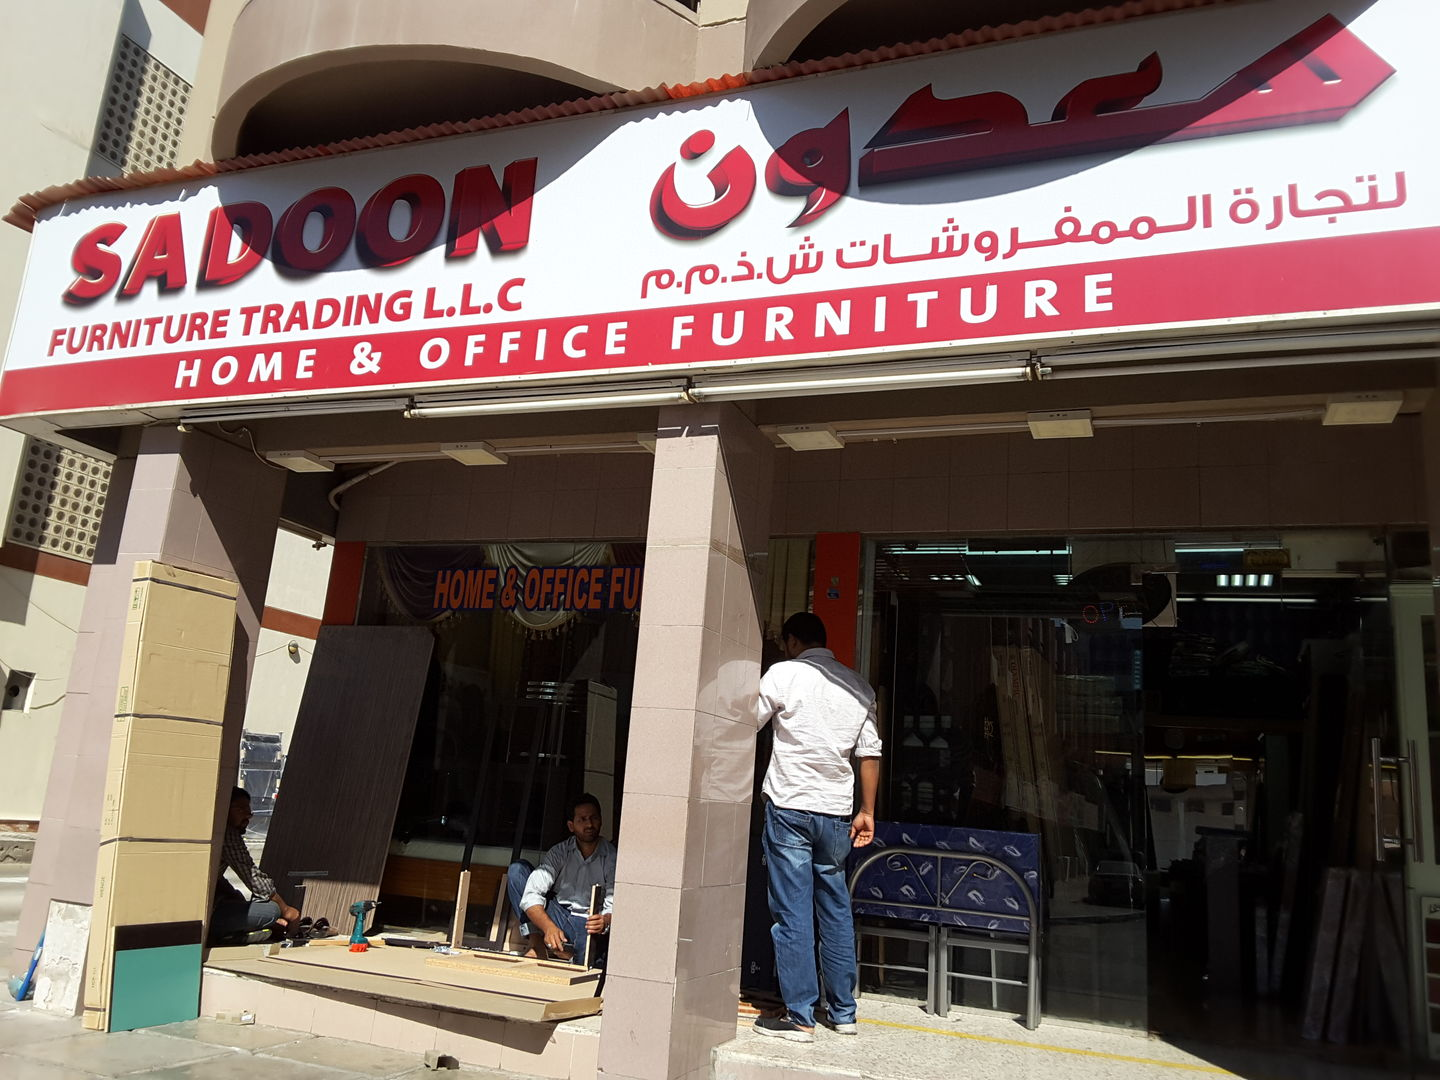 HiDubai-business-sadoon-furniture-trading-home-furniture-decor-al-karama-dubai-2